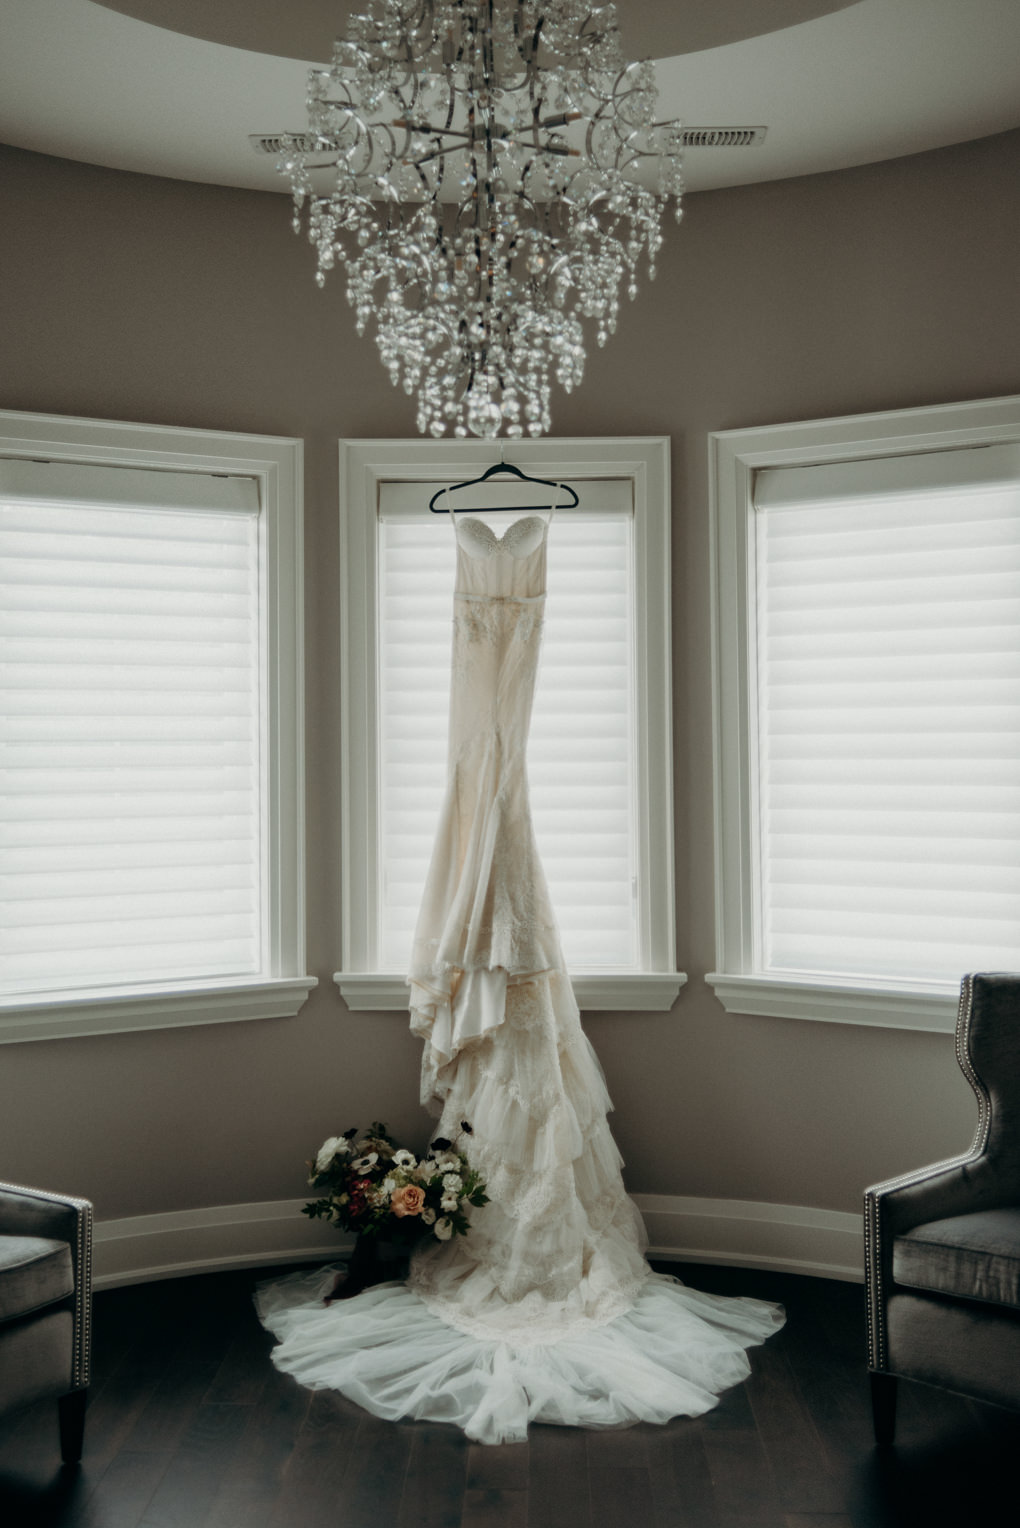 wedding dress with long train hanging in window